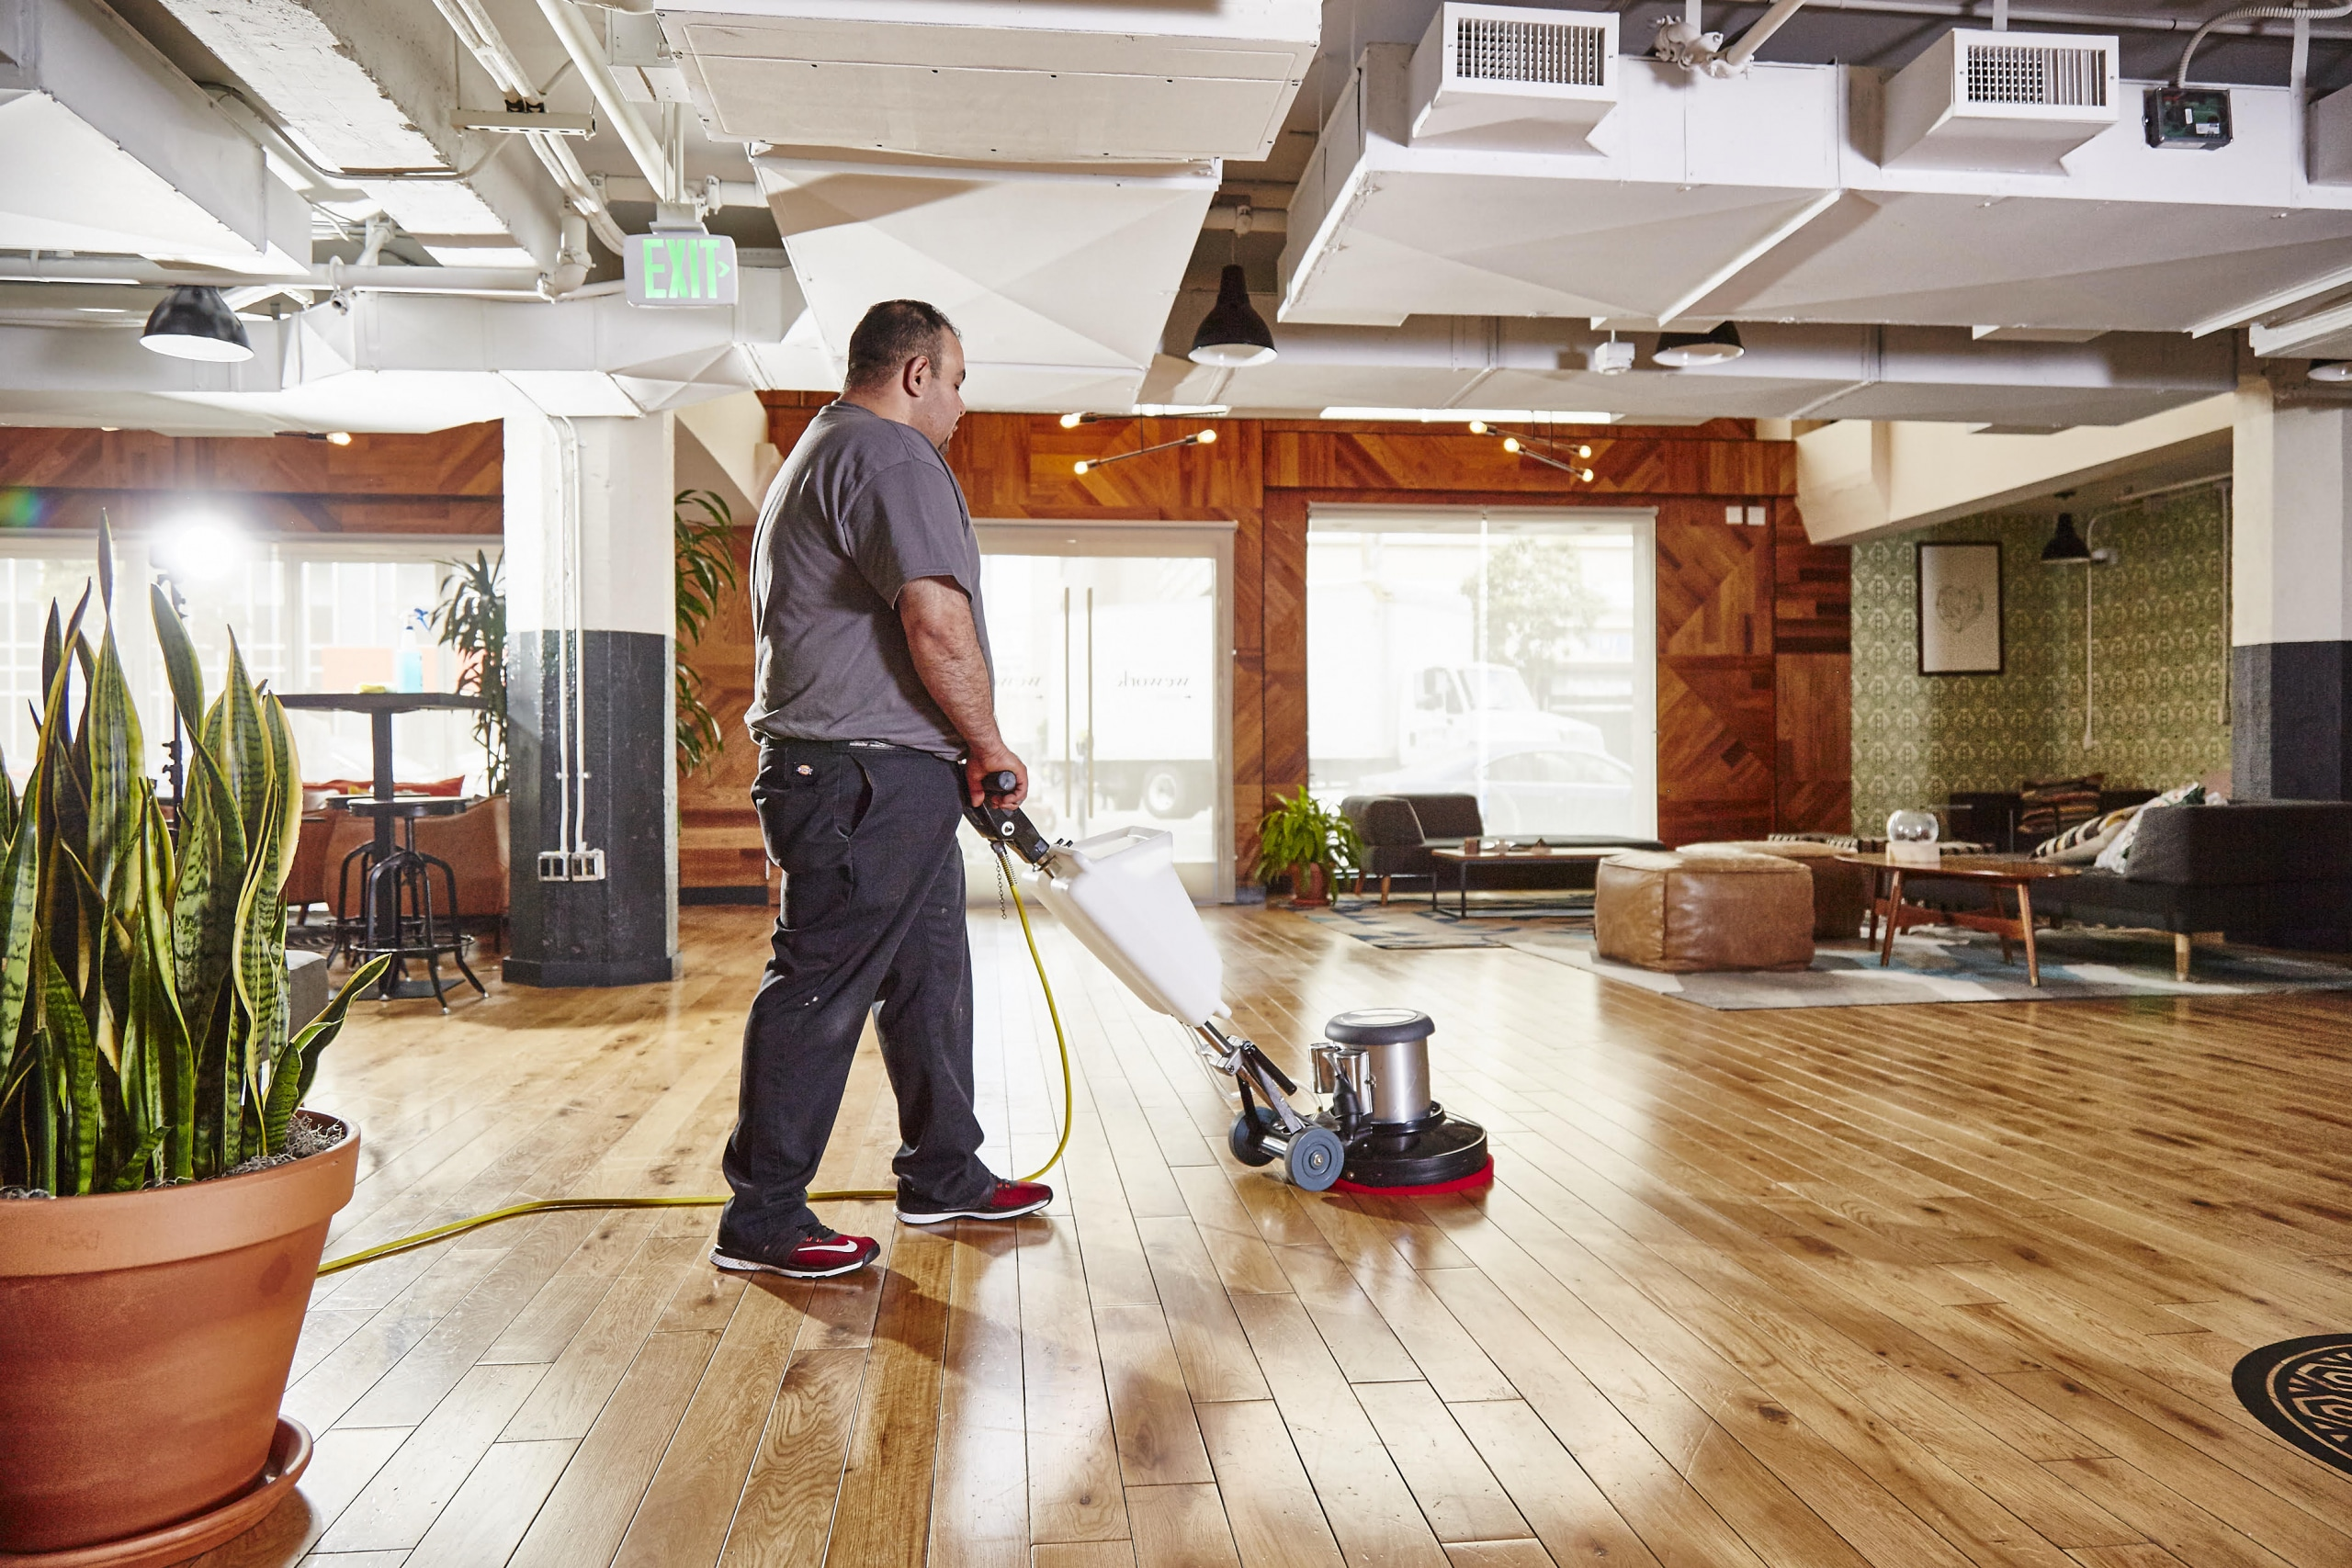 Man cleaning a hardwood floor with a machine.